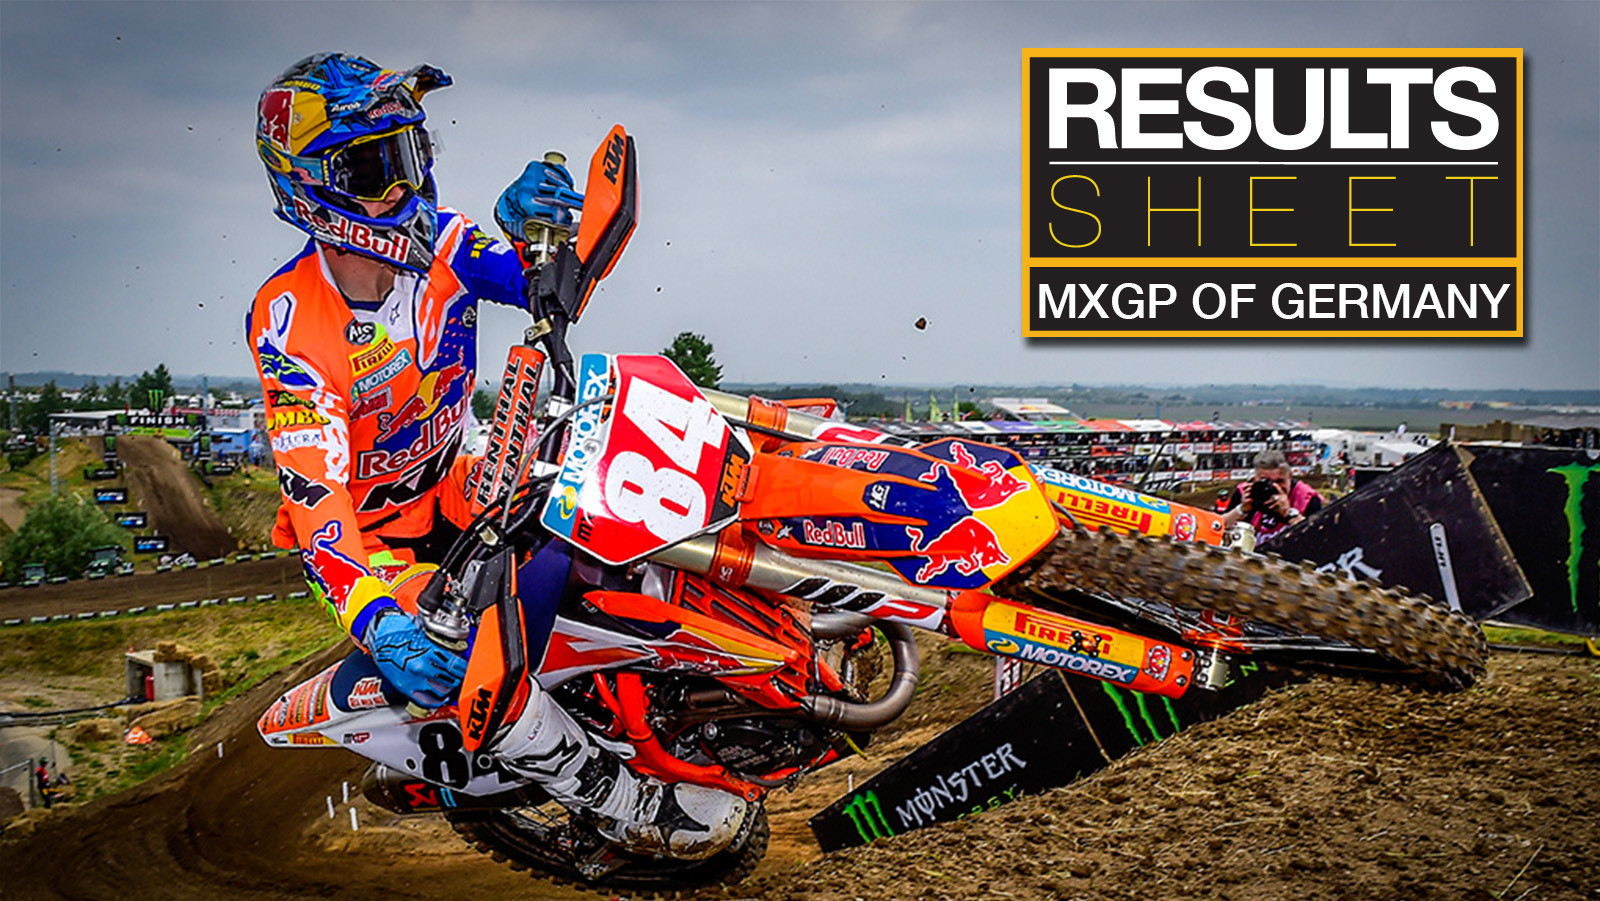 Results Sheet: 2018 MXGP of Germany